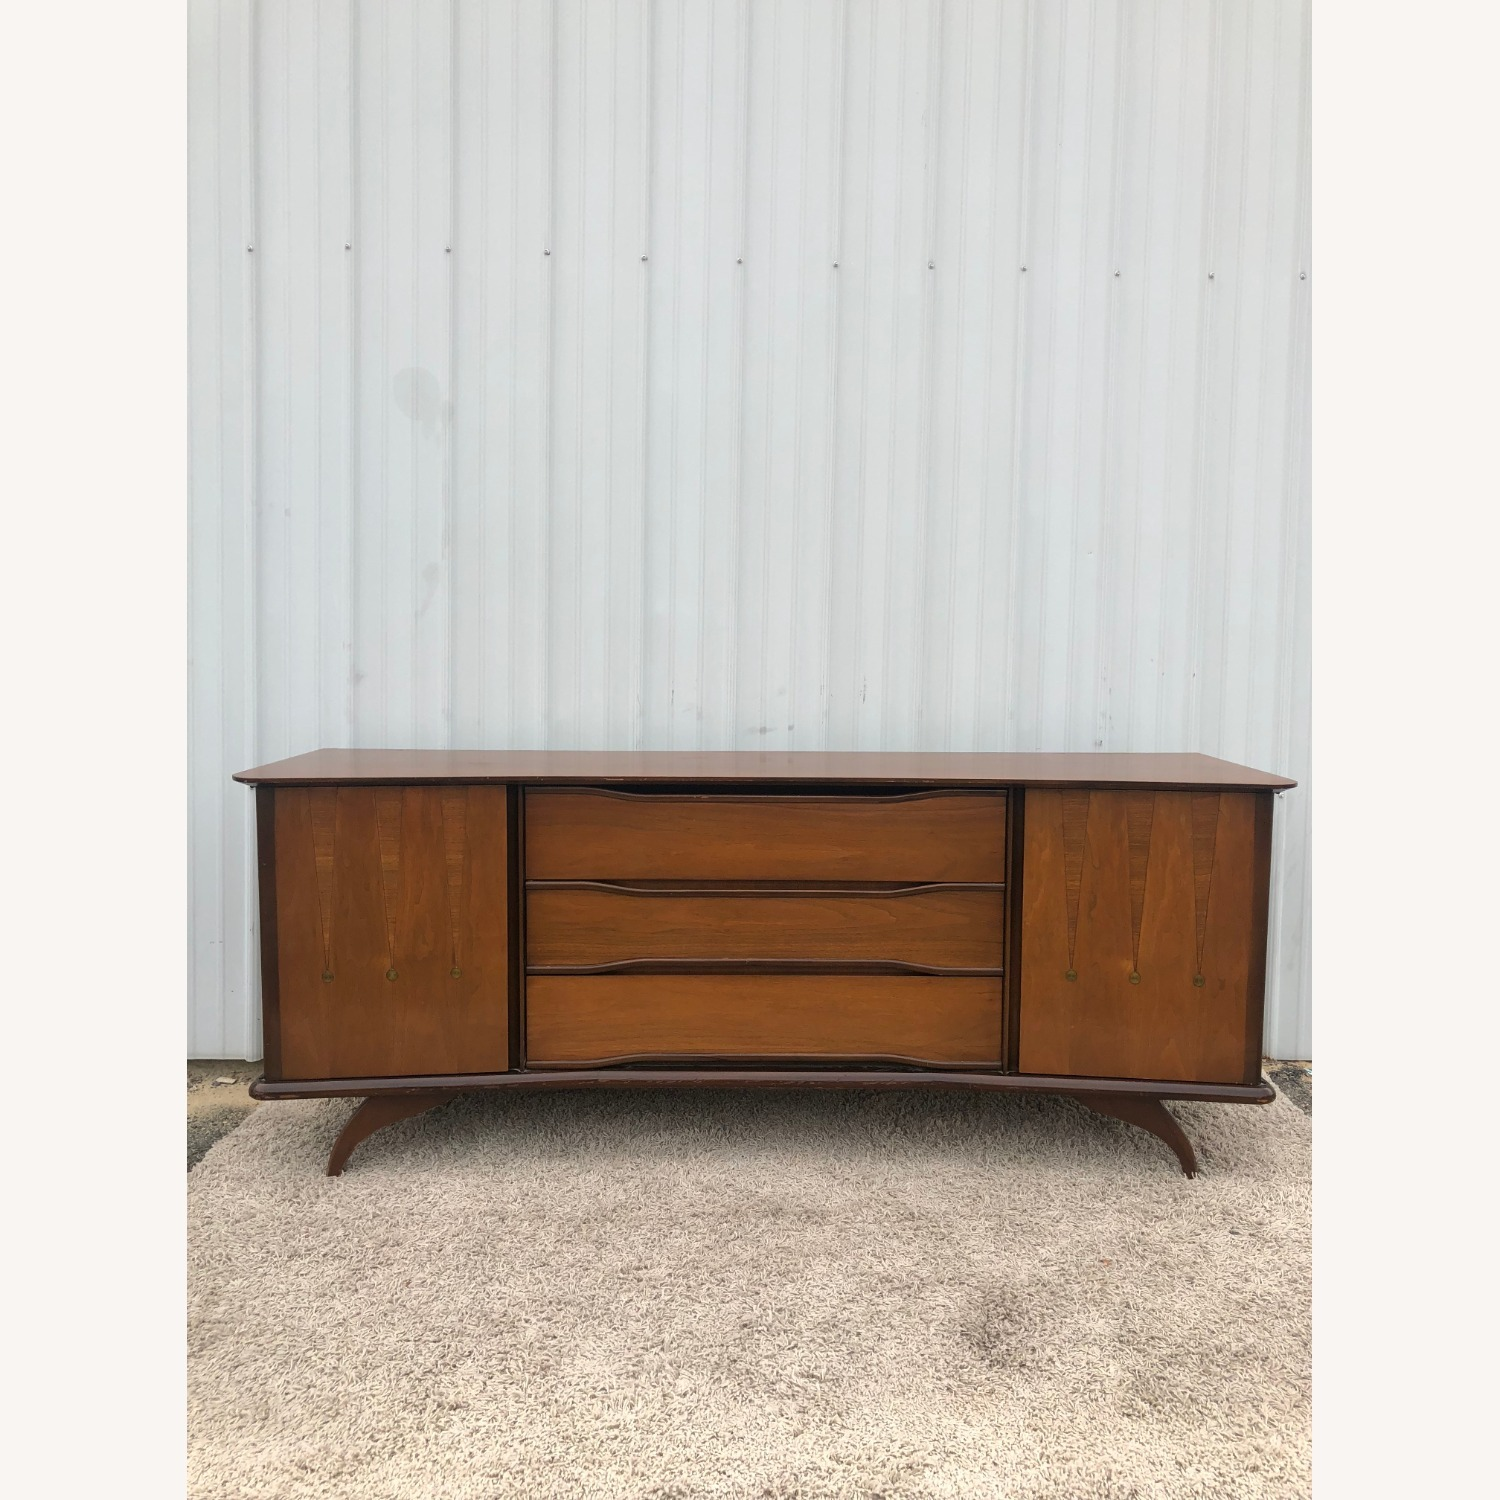 Mid Century Lowboy Dresser with Brasss Accents - image-10